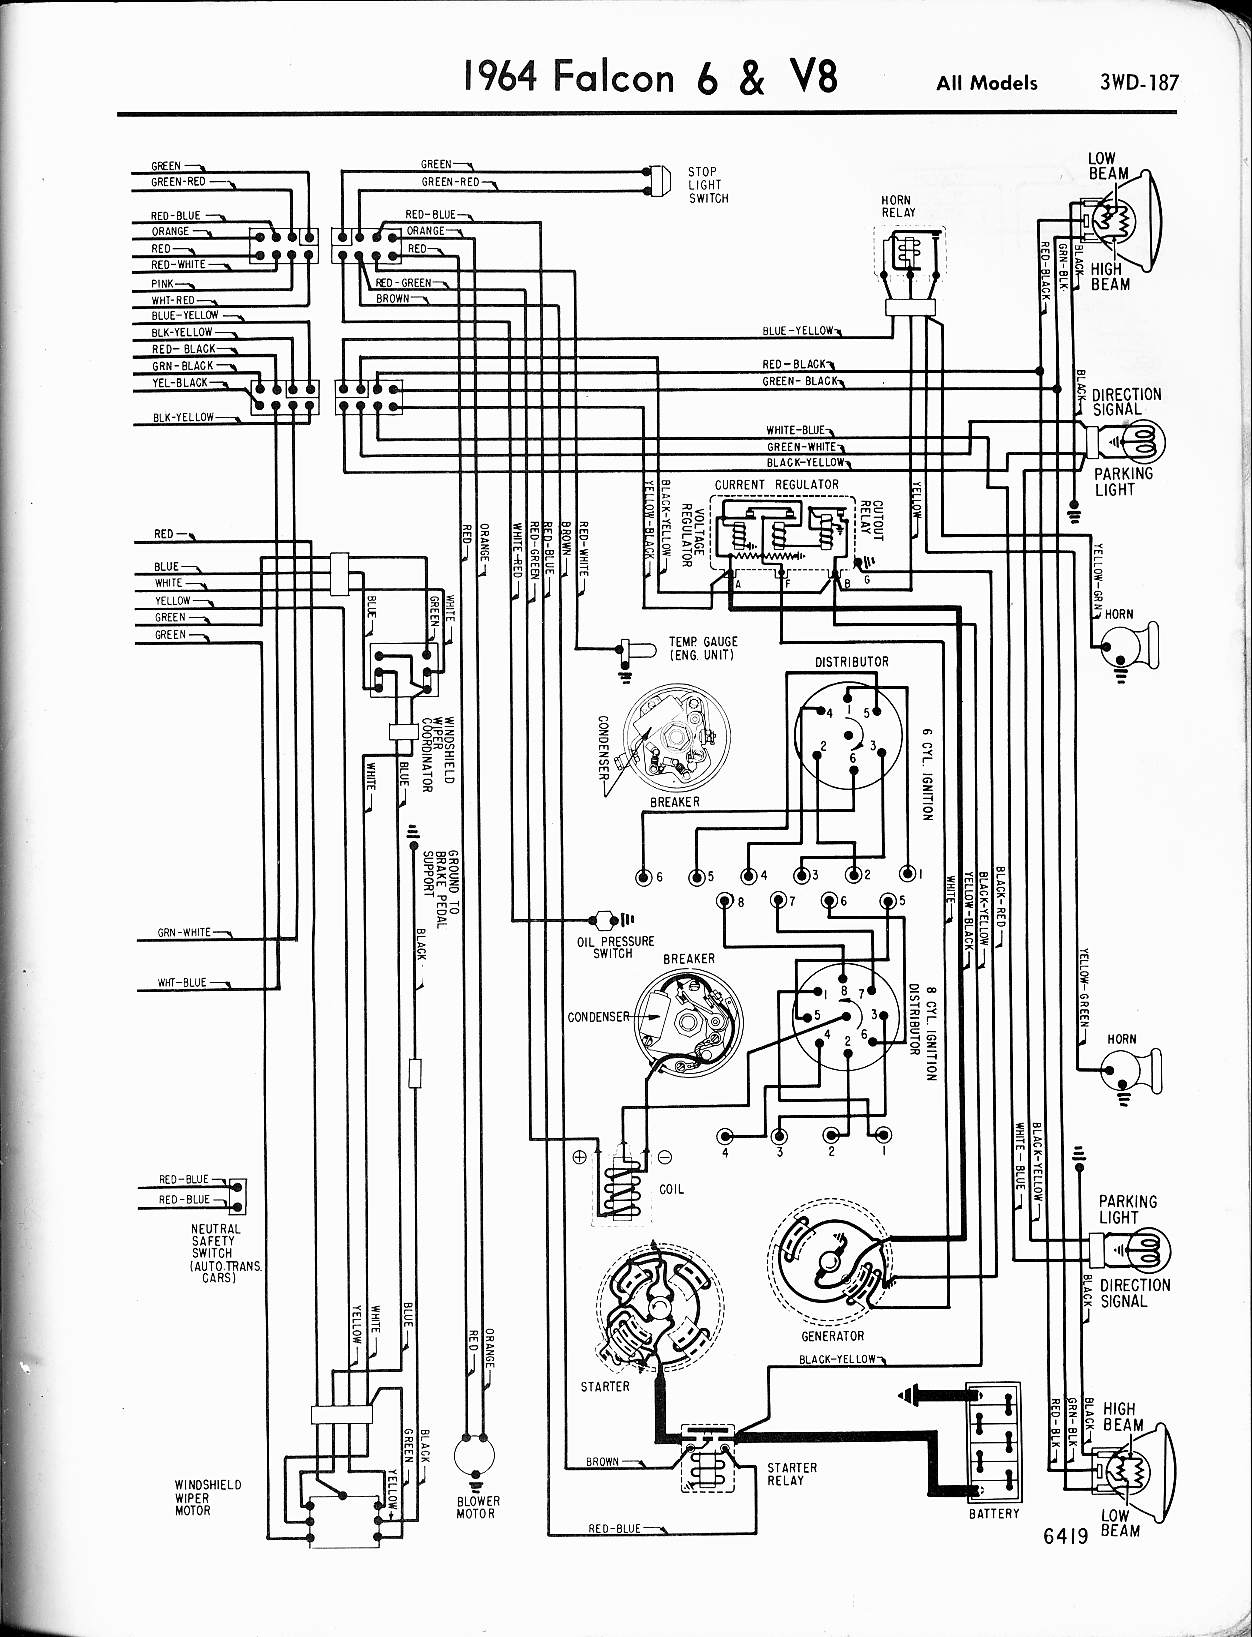 mercury comet wiring diagram image 1963 falcon wiring diagram 1963 auto wiring diagram schematic on 1963 mercury comet wiring diagram